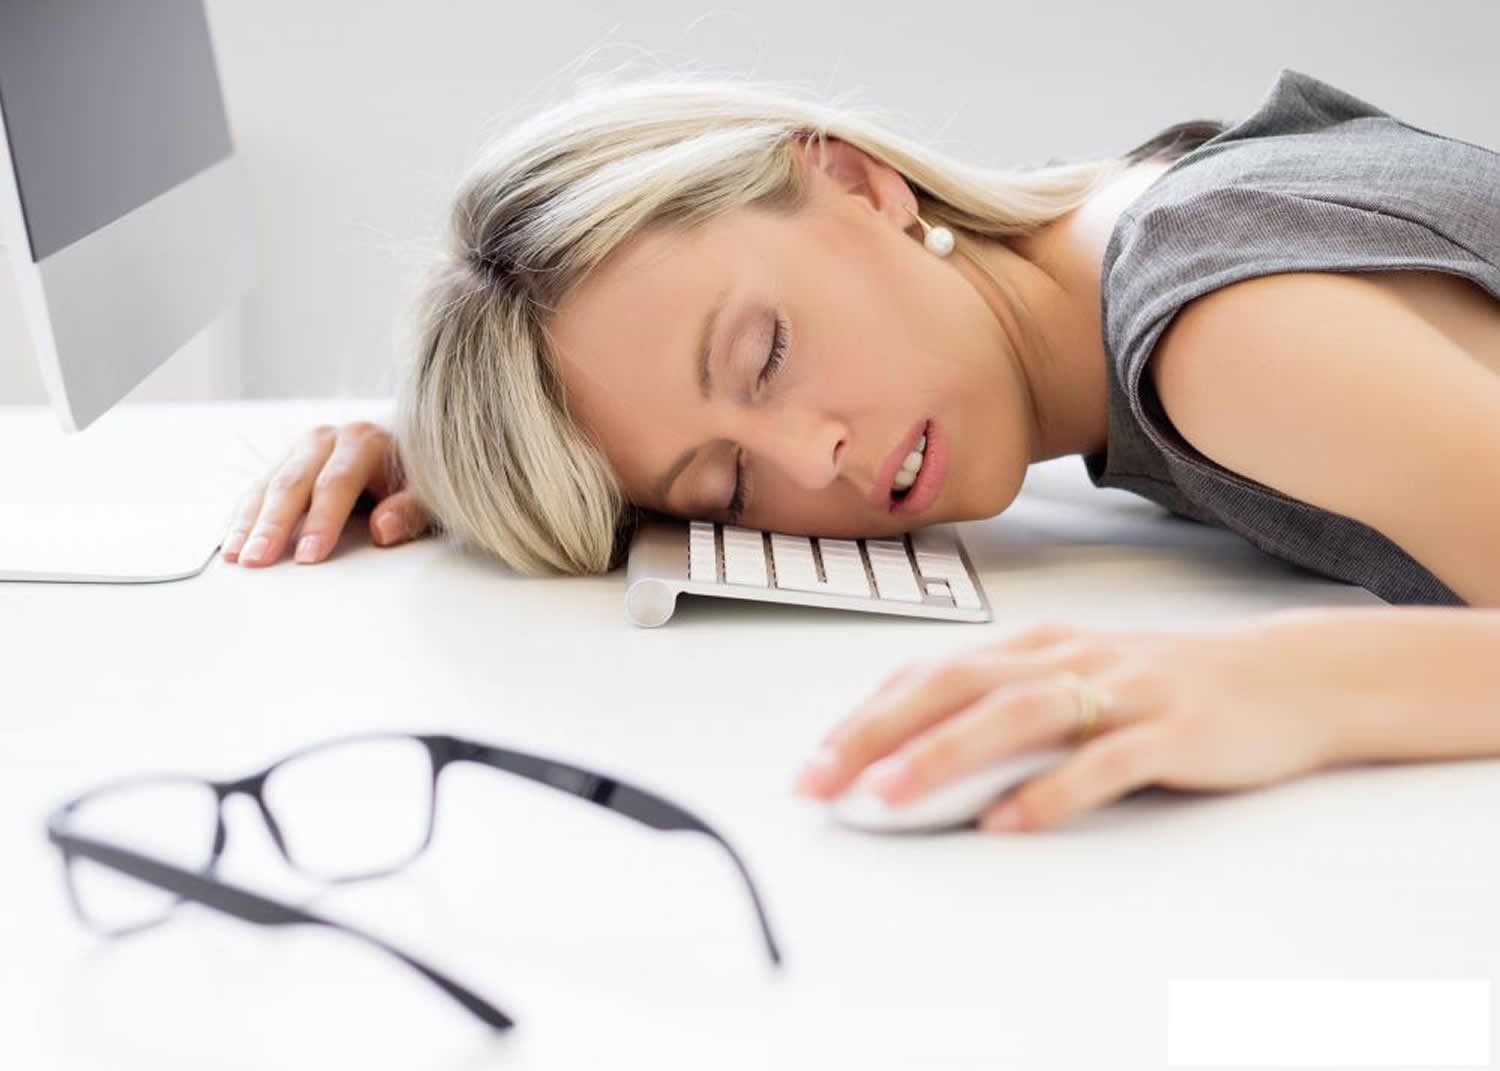 Reduce the symptoms of narcolepsy neurological disorder